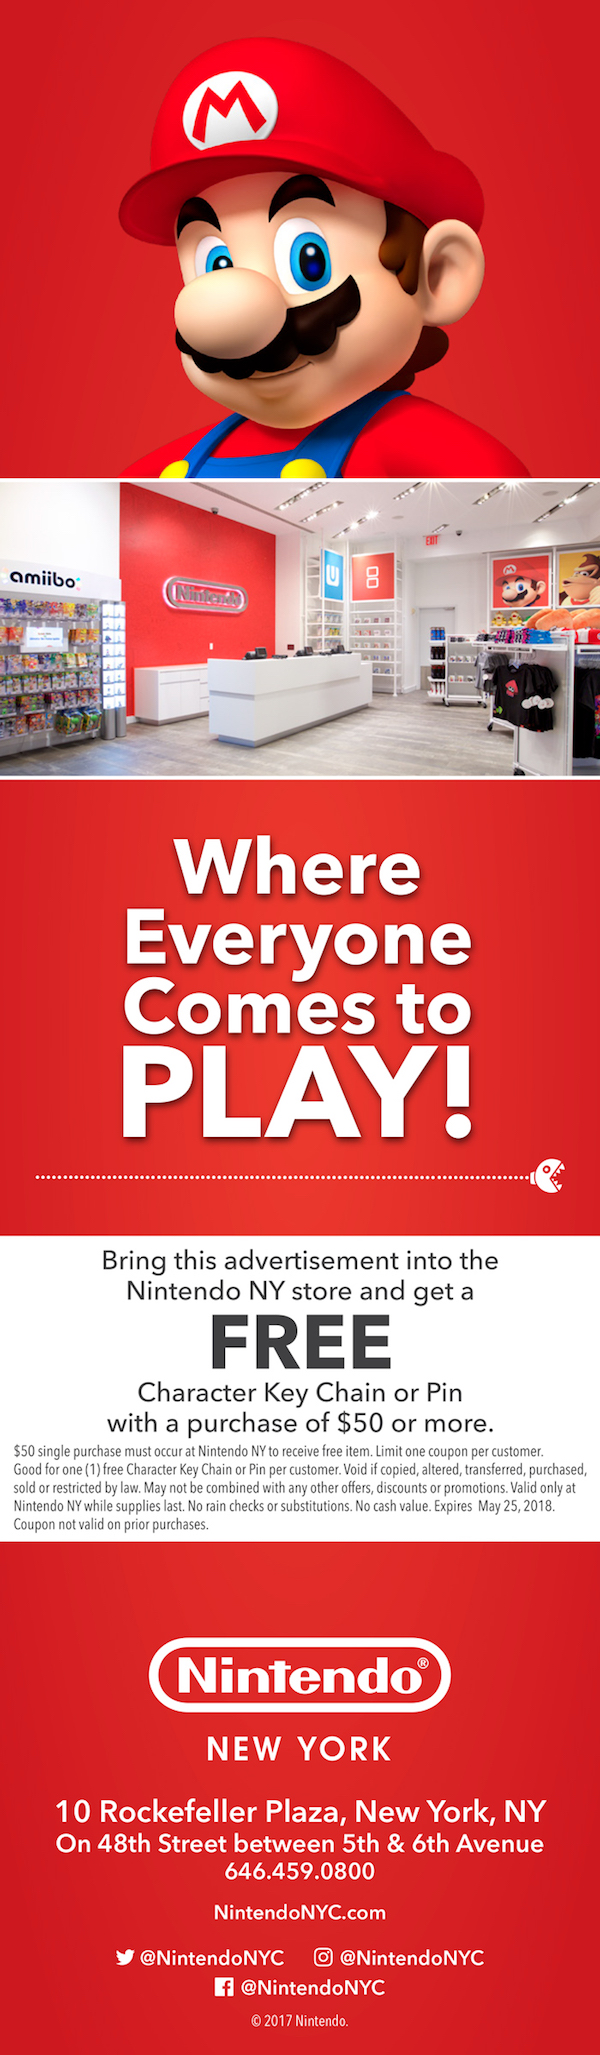 Nintendo NY - Bring this ad into the Nintendo NY store and get a FREE character key chain or pin with $50 or more purchase.  Expires: 5/25/2018